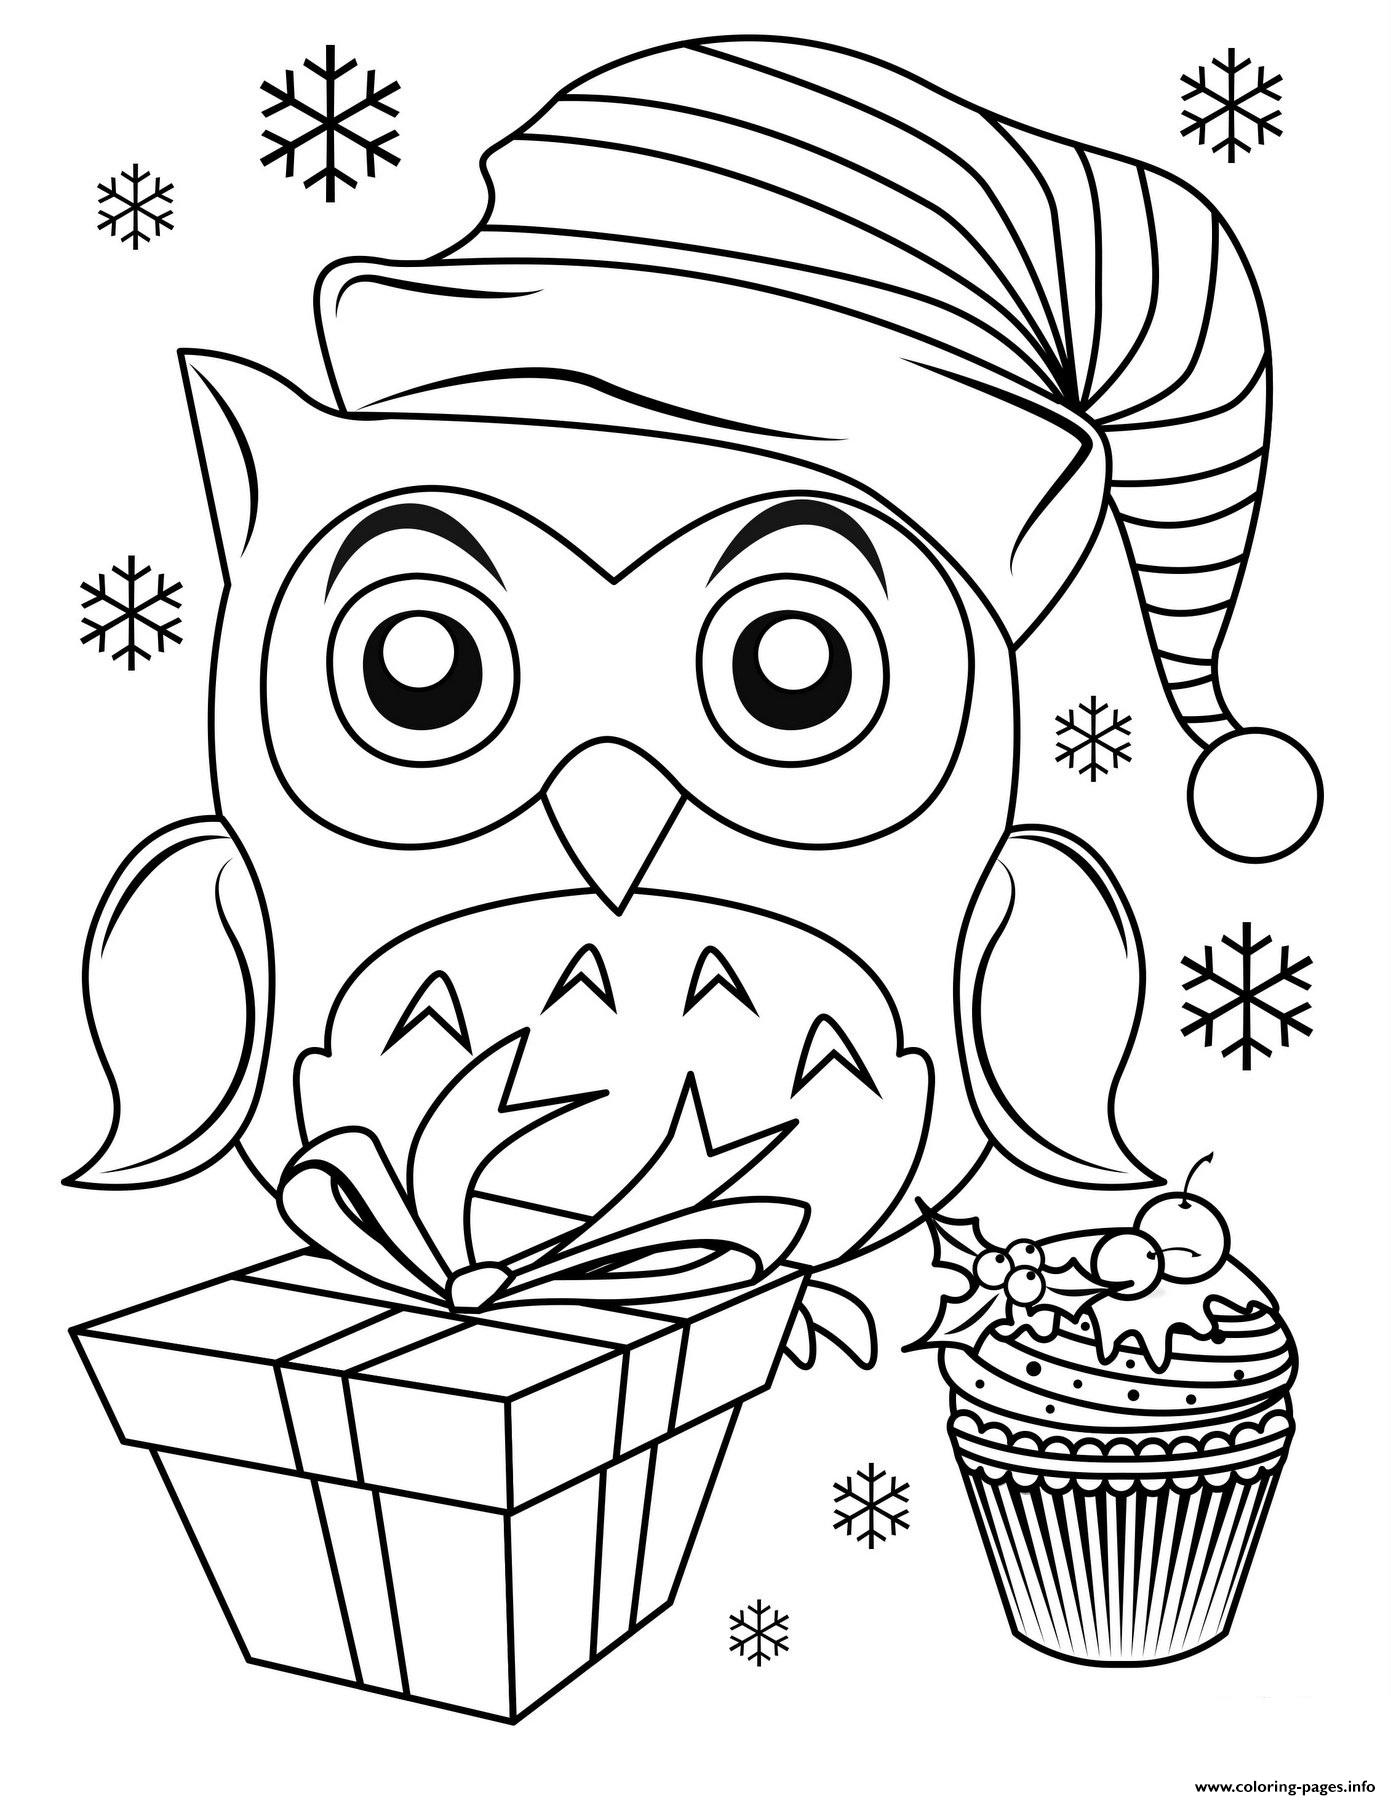 Cute Christmas Owl Coloring Pages Printable